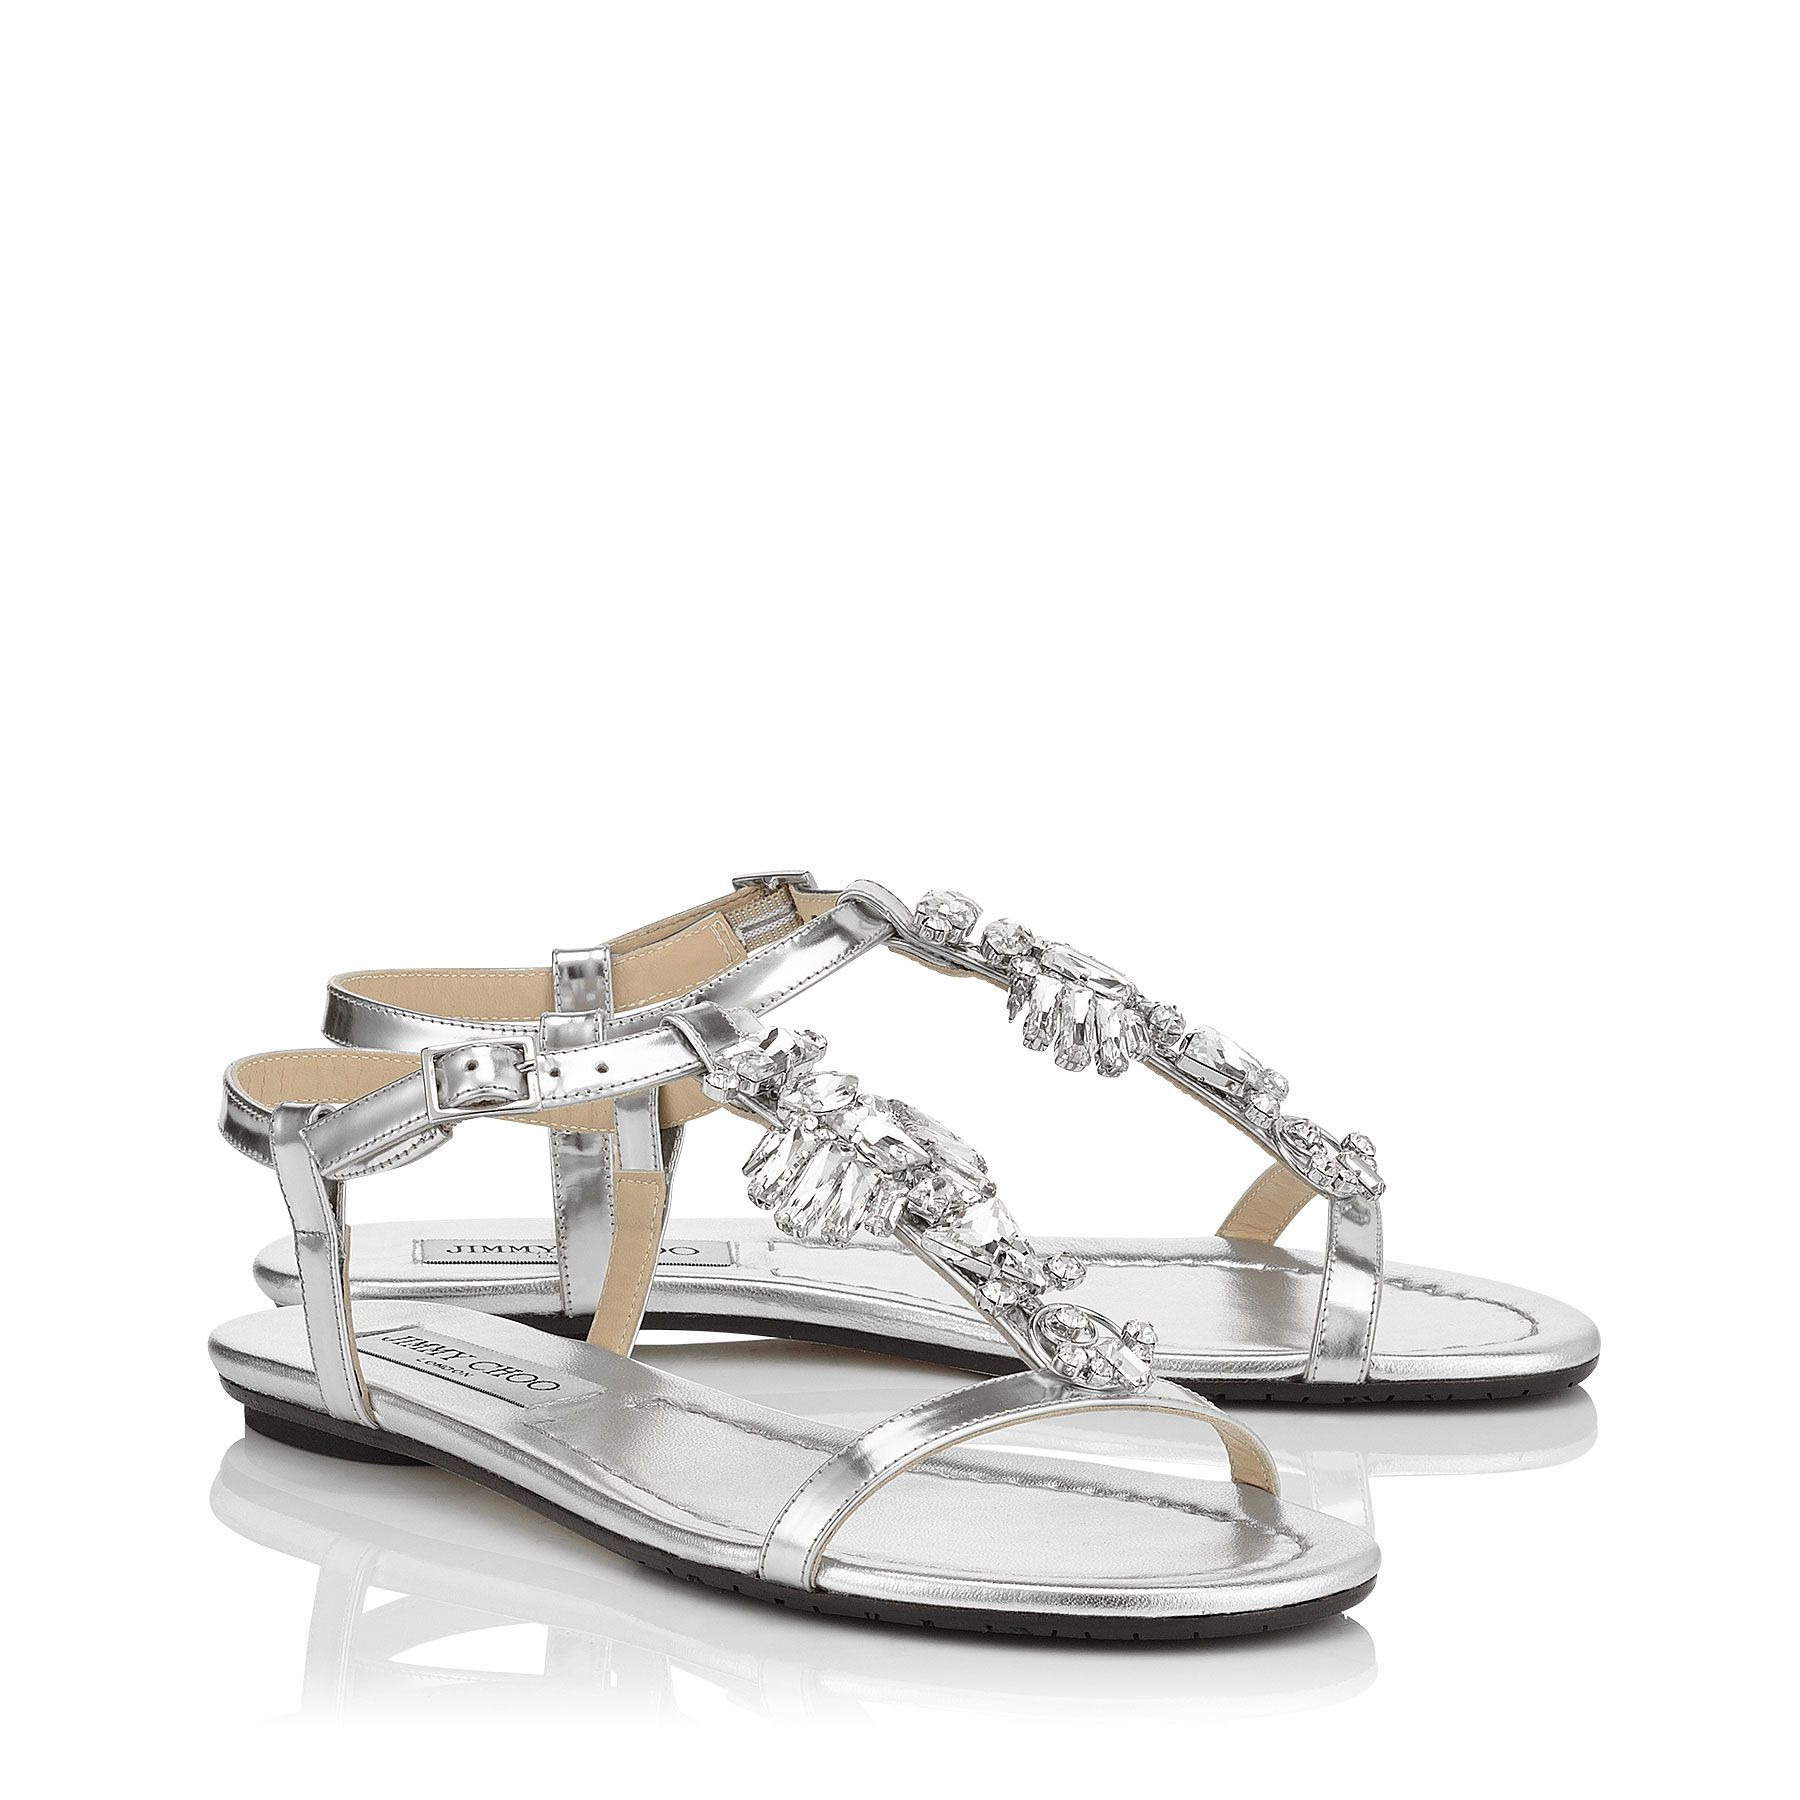 0ec90d0961c1 Silver Mirror Leather Flat Sandals with Crystal Detail